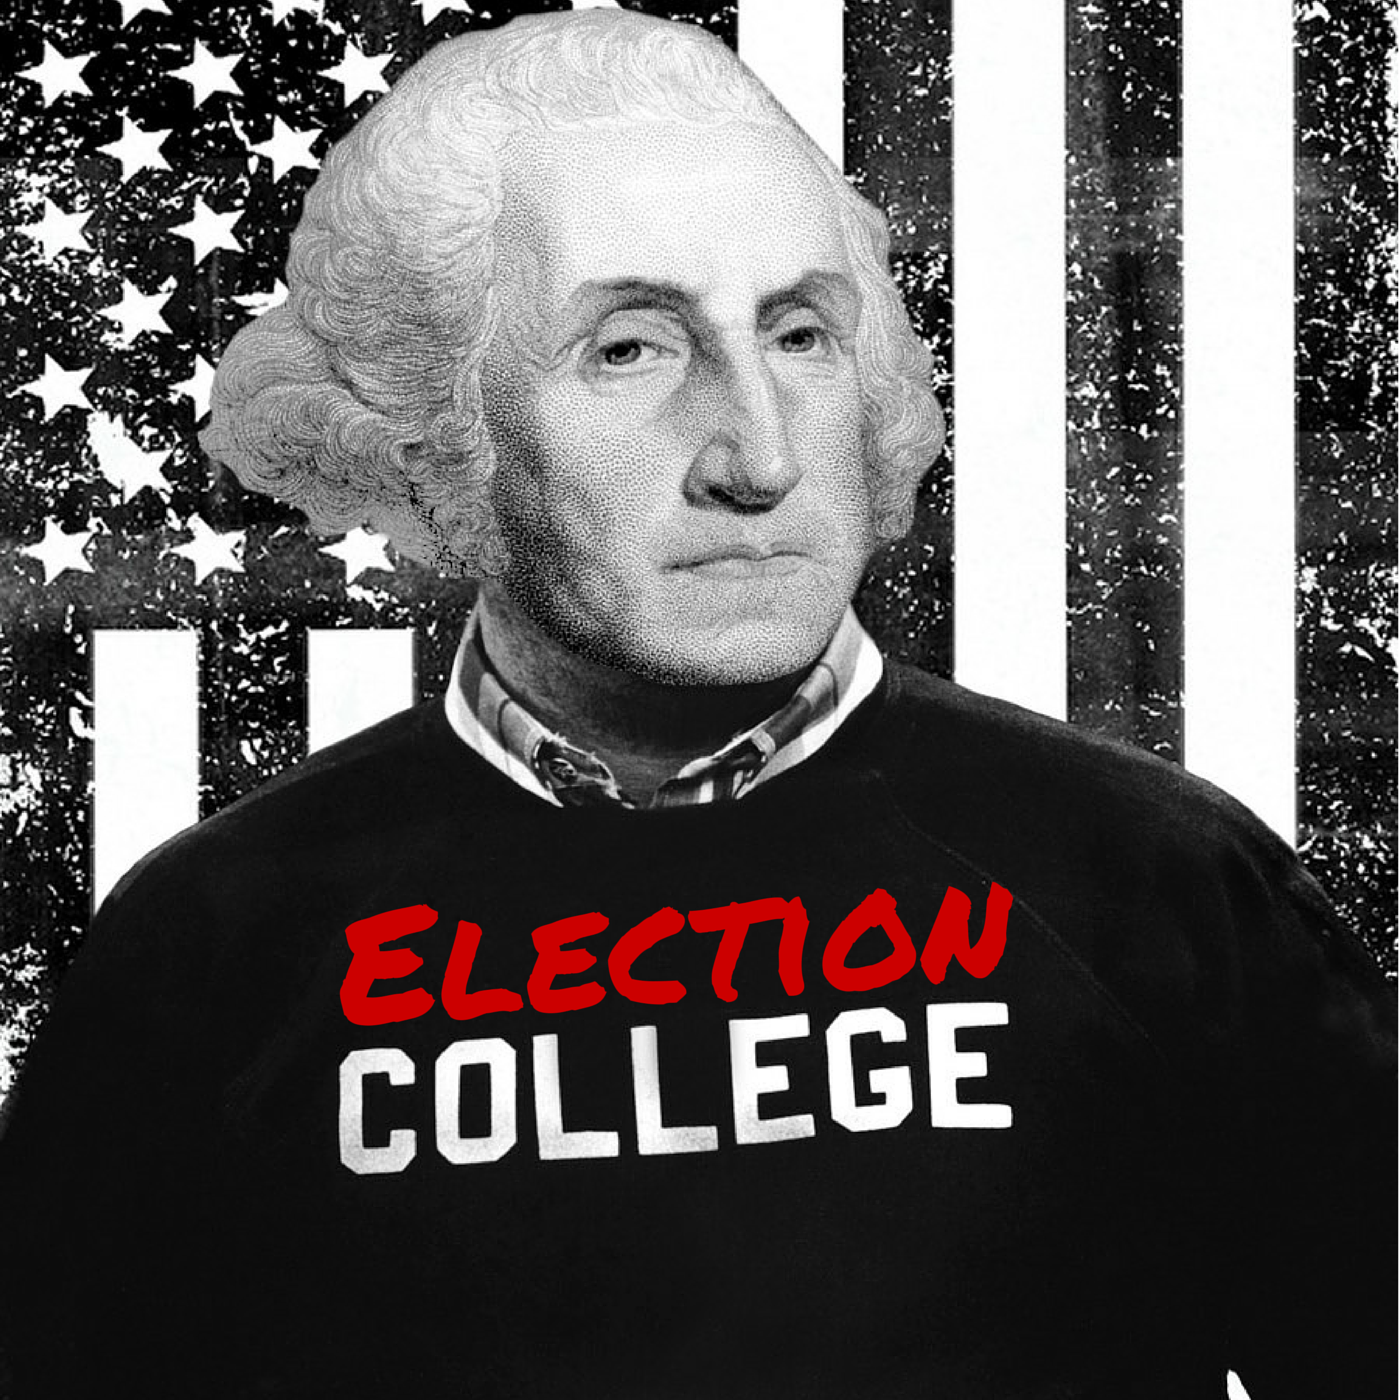 Admitting States To The Union | Episode #202 | Election College: United States Presidential Election History